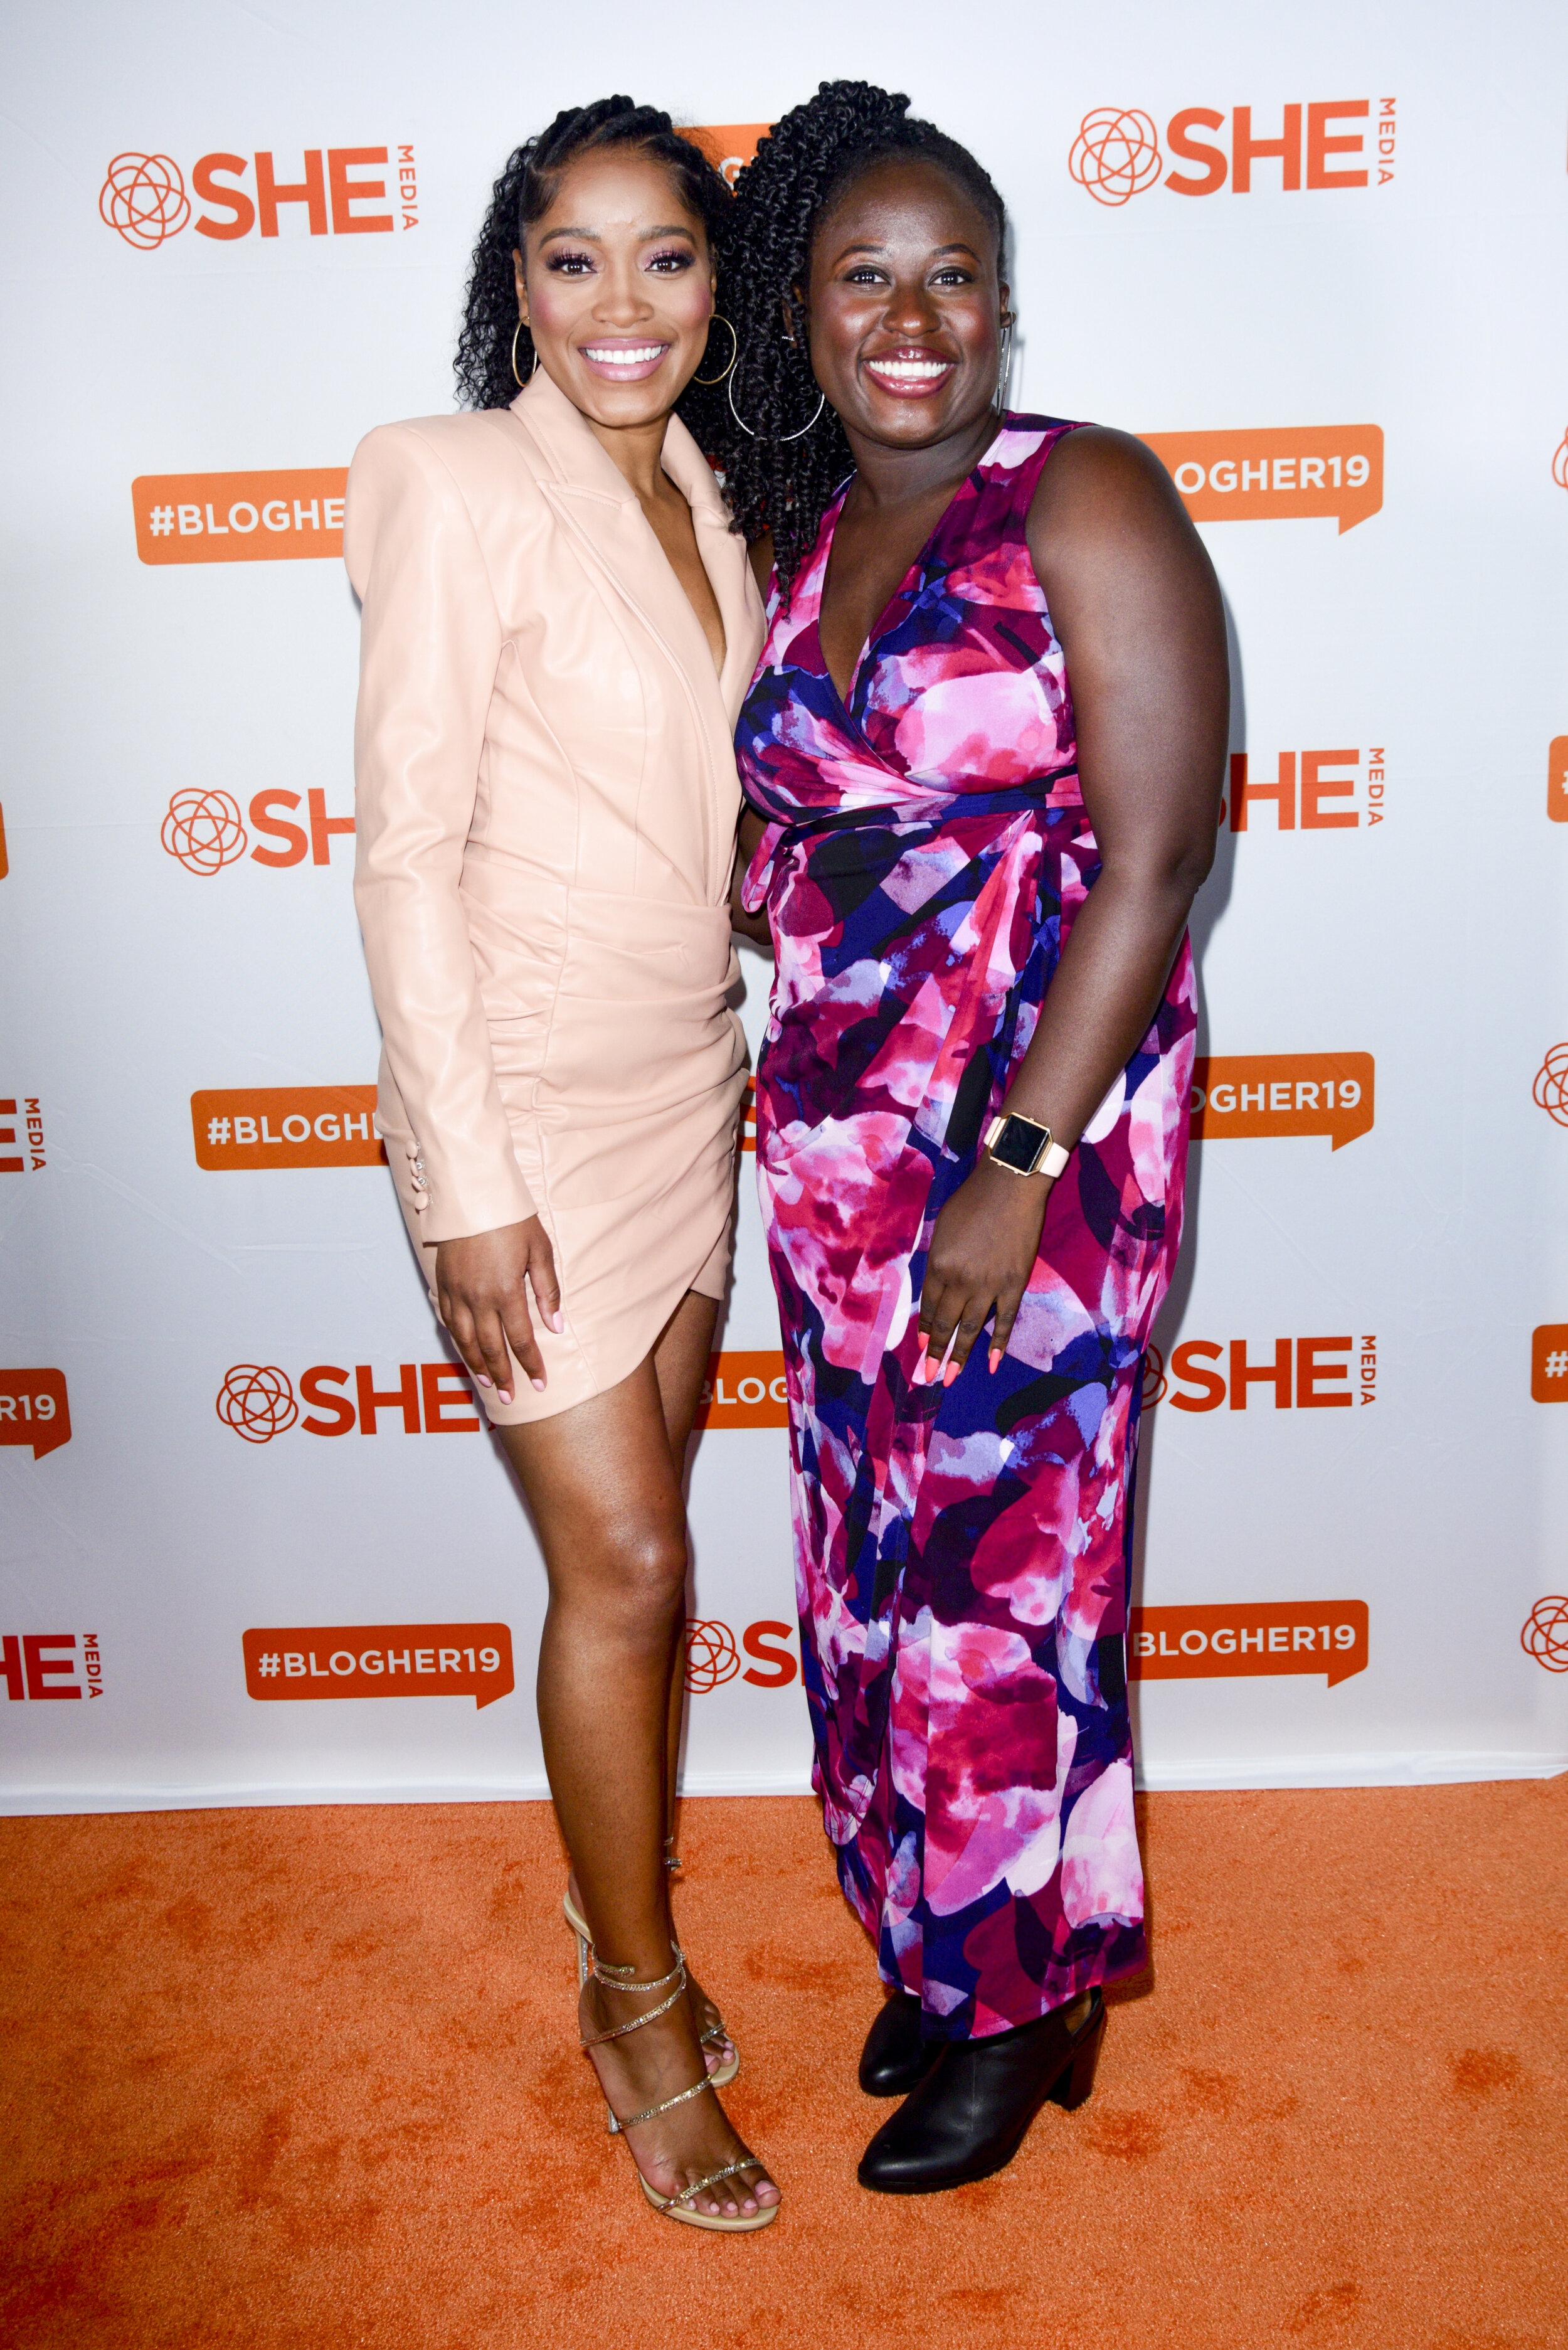 Keke Palmer and StyleCaster's Entertainment Editor Aramide Tinubu backstage at #BlogHer19 Creators Summit